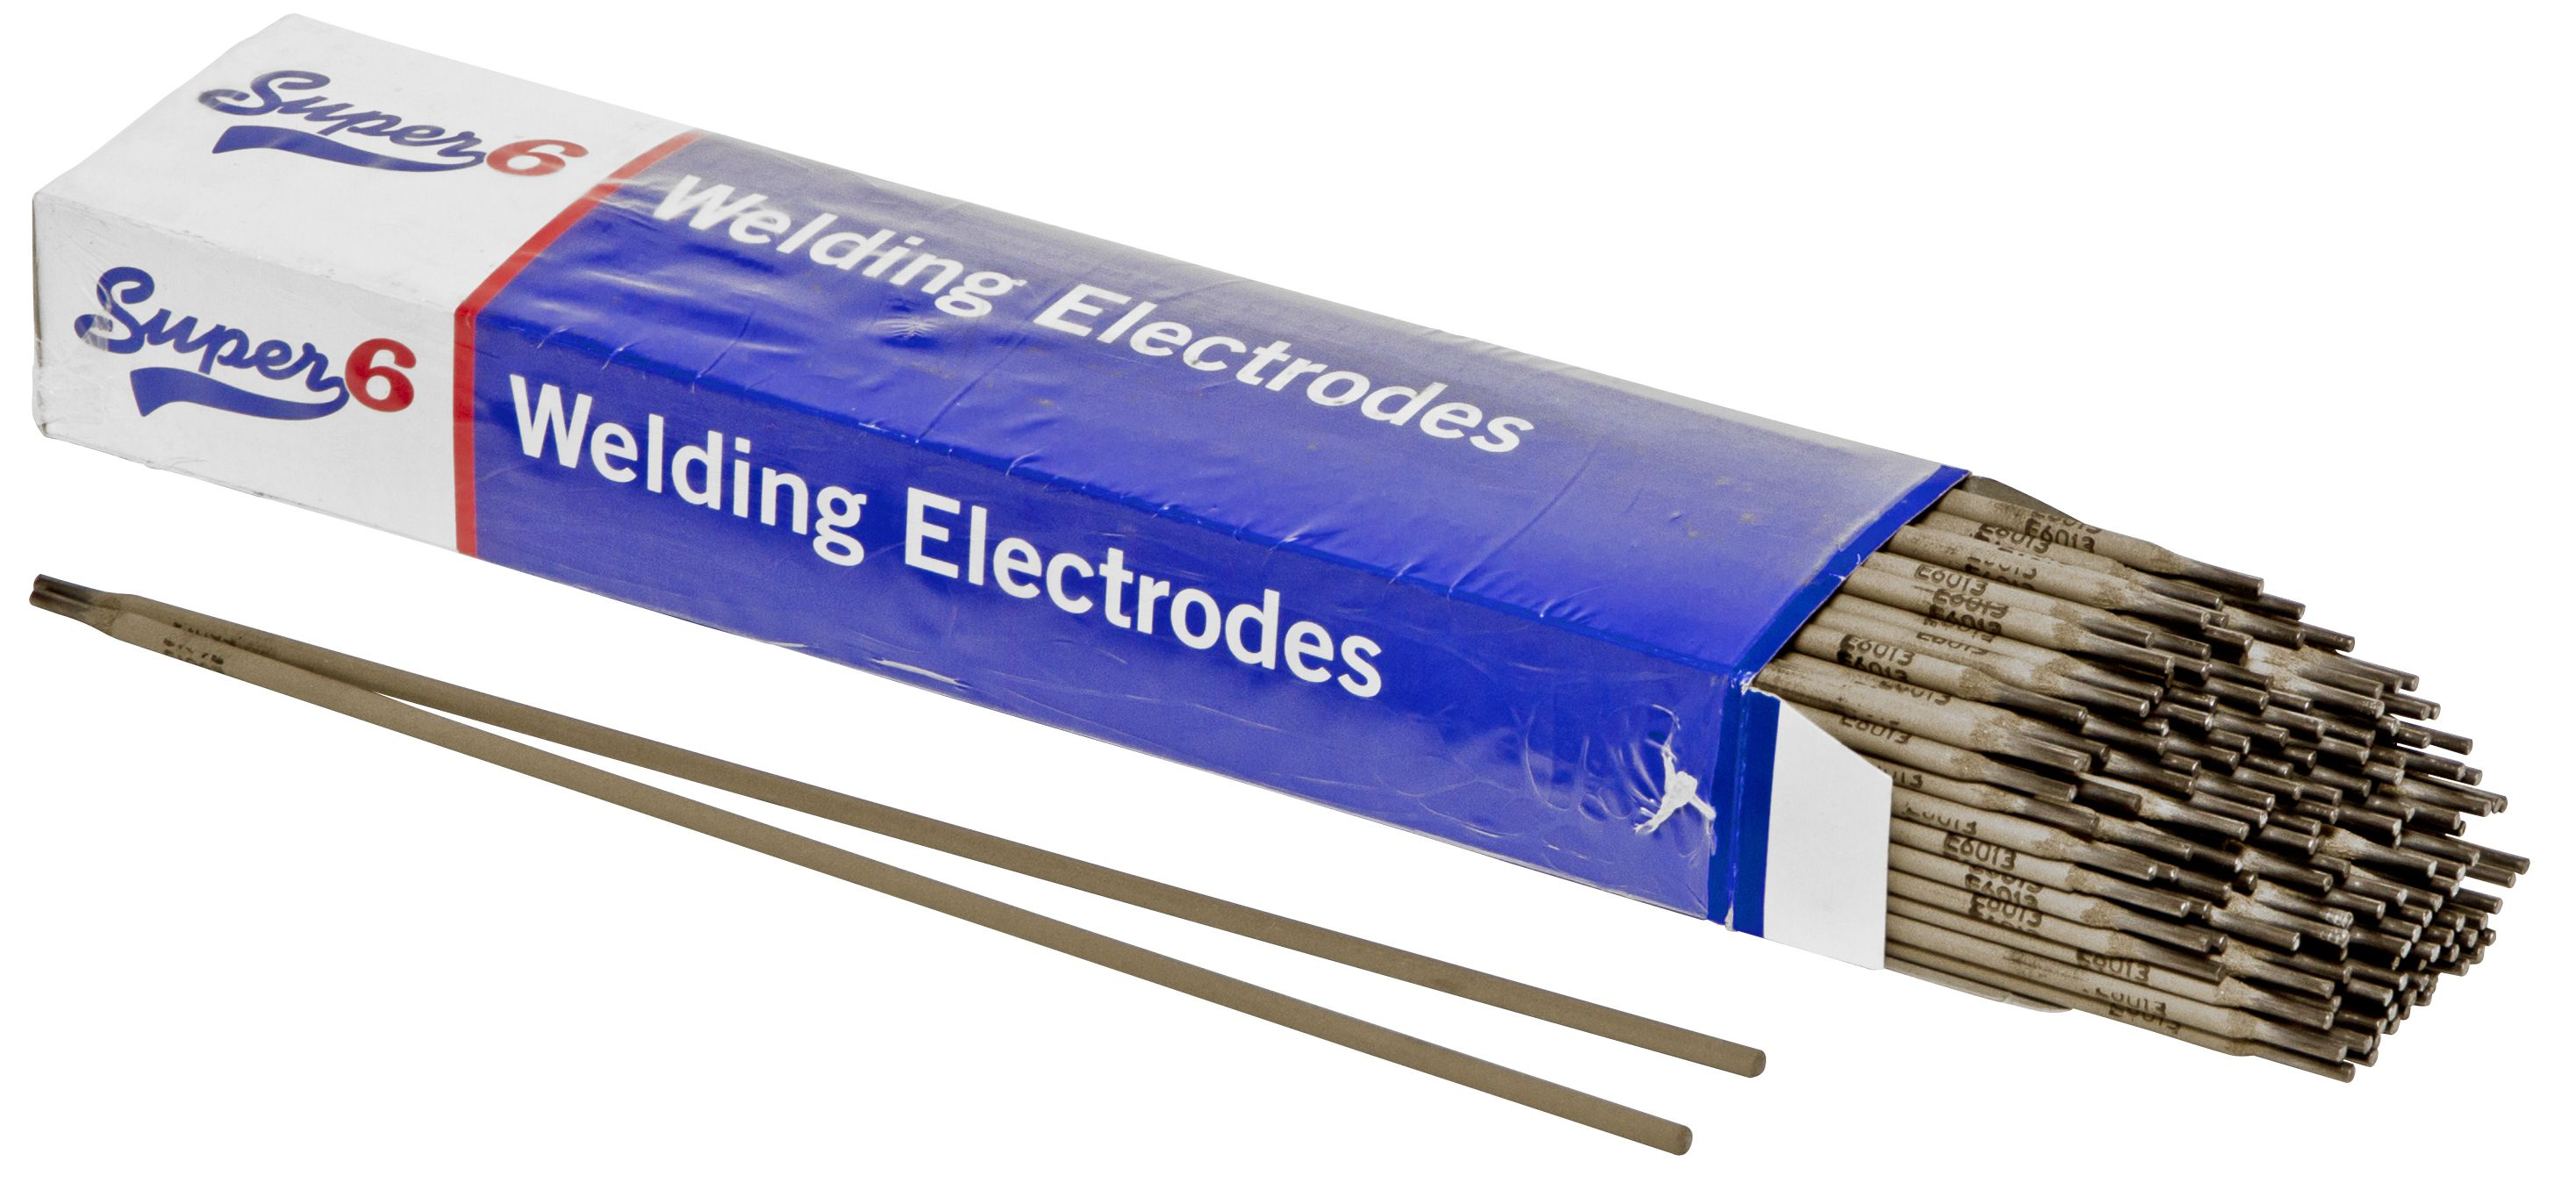 welding soldering 39 super 6 39 general purpose welding electrodes. Black Bedroom Furniture Sets. Home Design Ideas